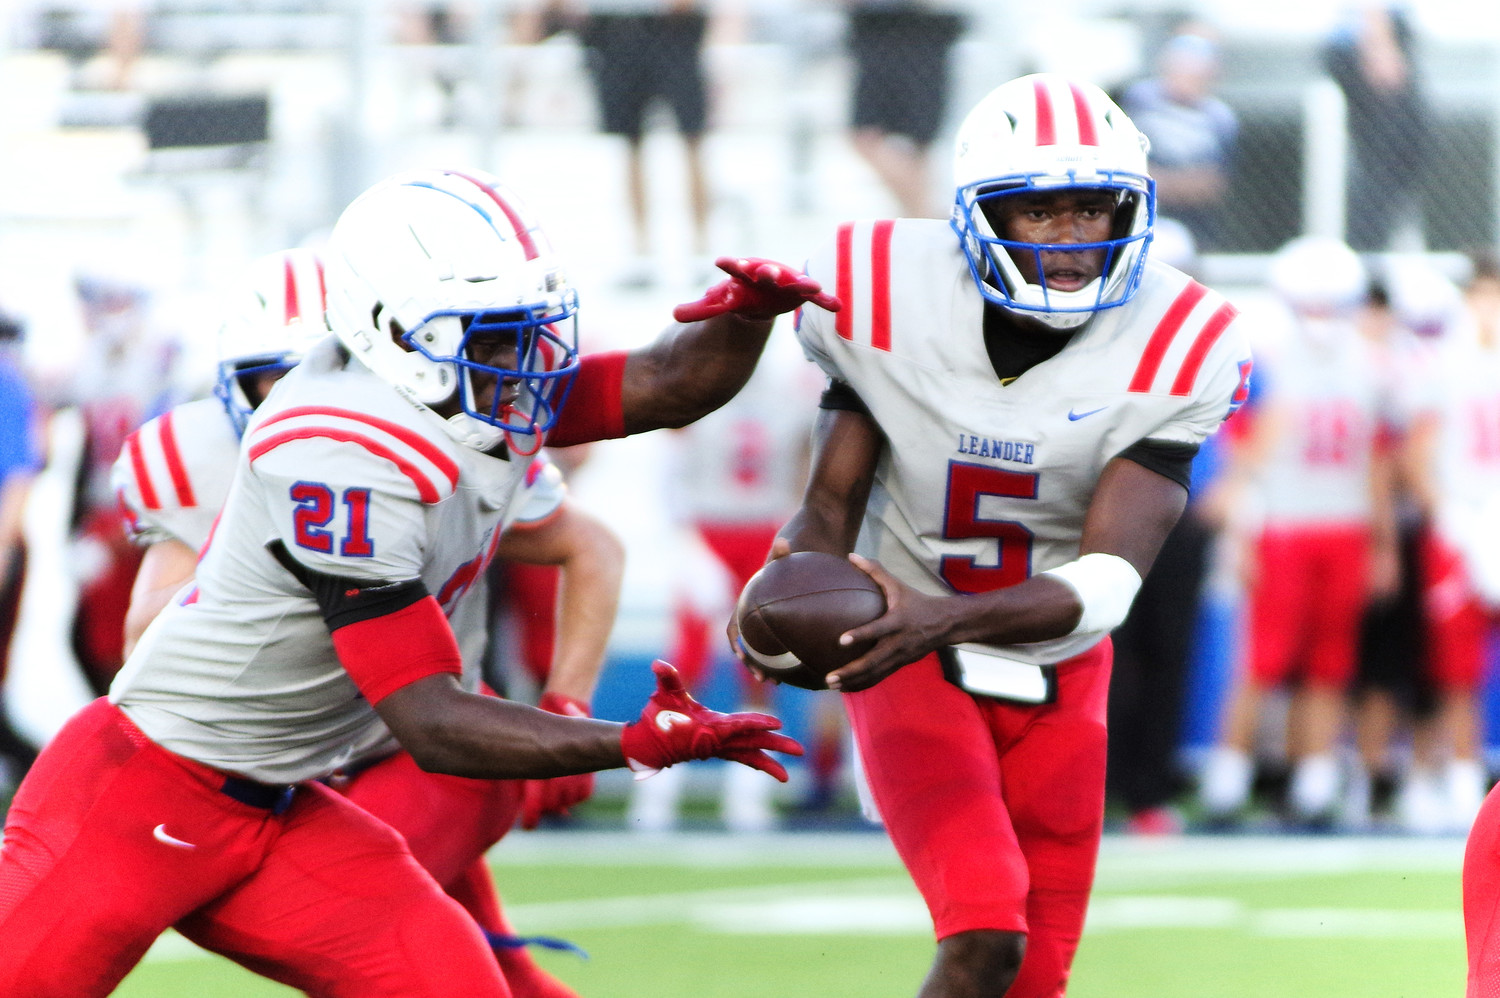 Leander high School Quarterback Rashad Cater (5) hands off to Runningback Xavier Dotson (21) against Weiss at the Pfield August 30, 2018.